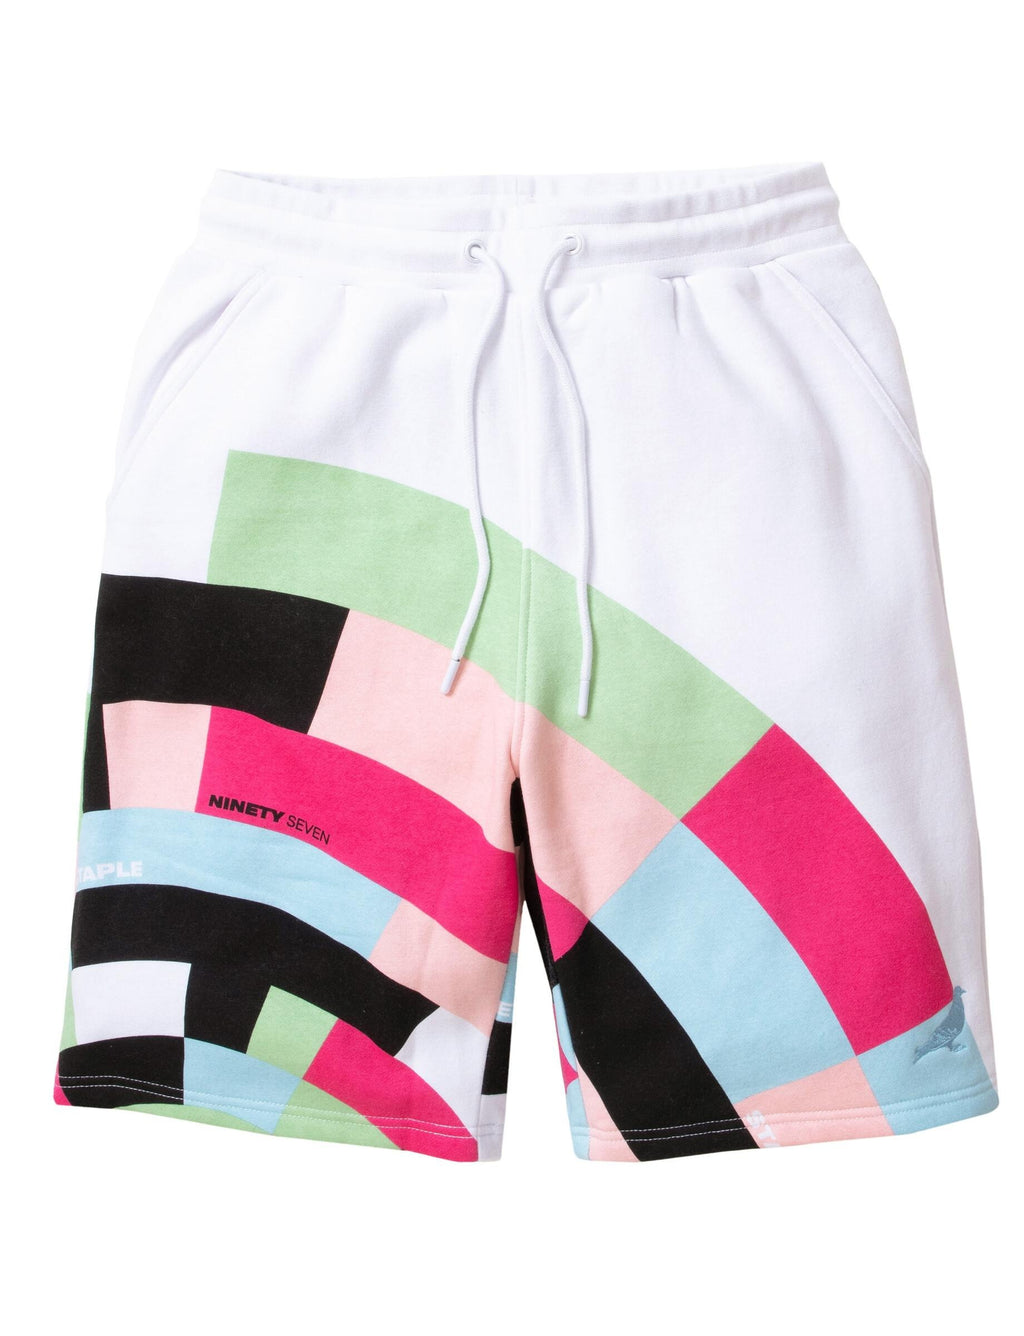 Chromatic Sweatshort - Shorts | Staple Pigeon